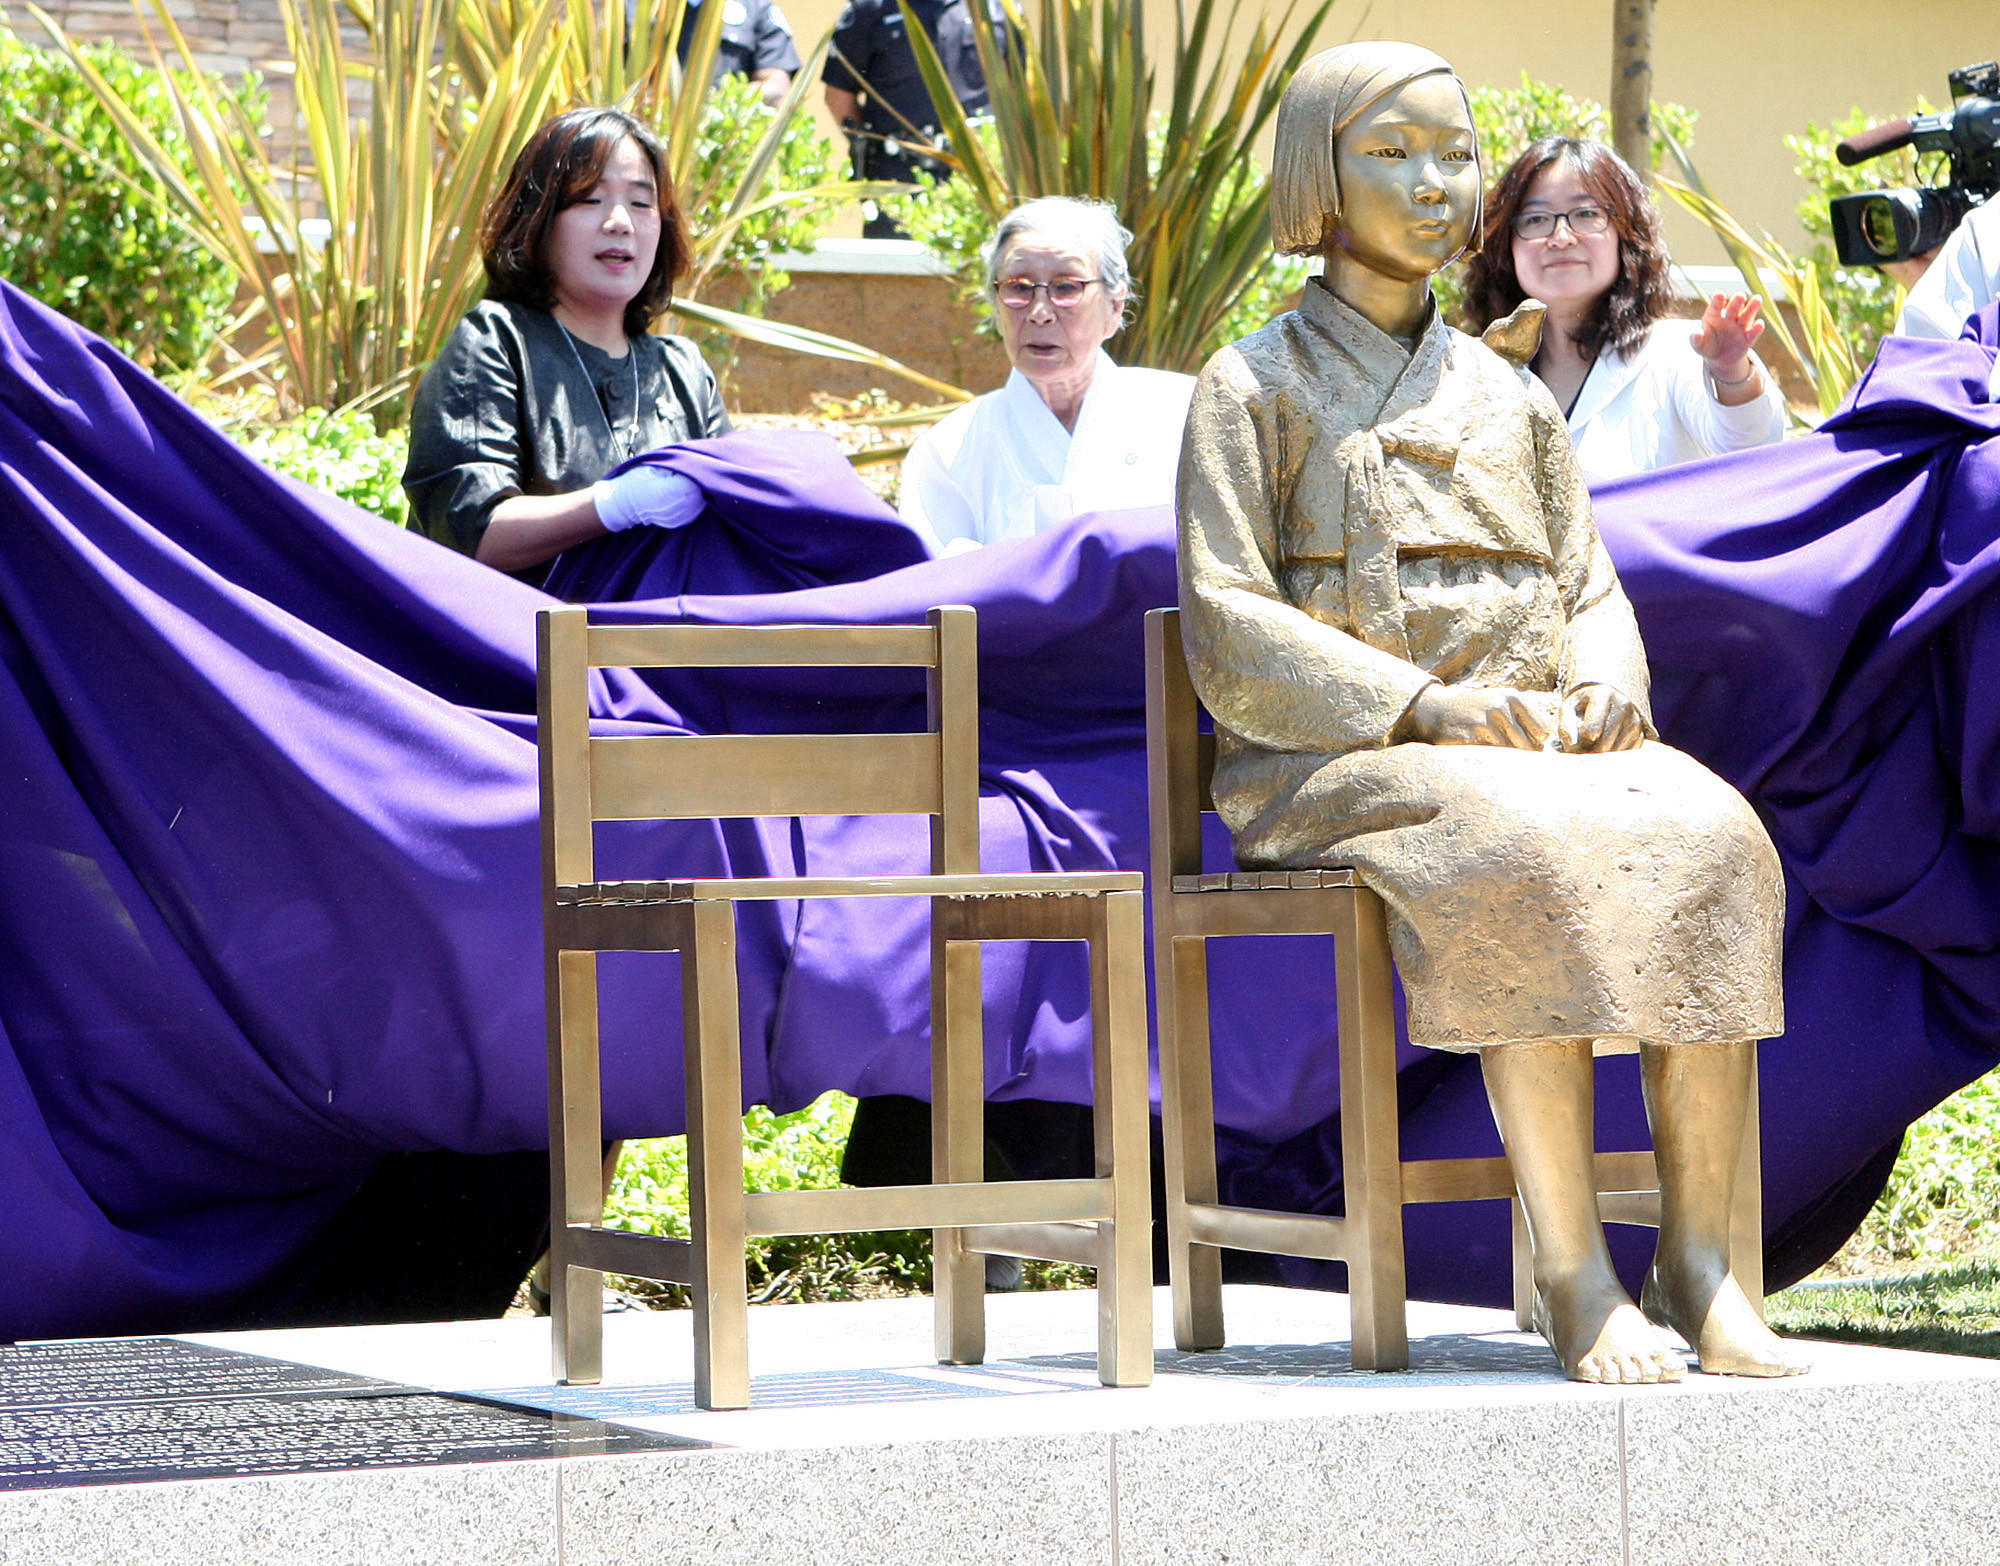 Bok-dong Kim, a comfort woman survivor, is directly behind the monument as it is being unveiled at the unveiling ceremony of the Comfort Women Memorial Monument in Glendale on Tuesday, July 30, 2013.